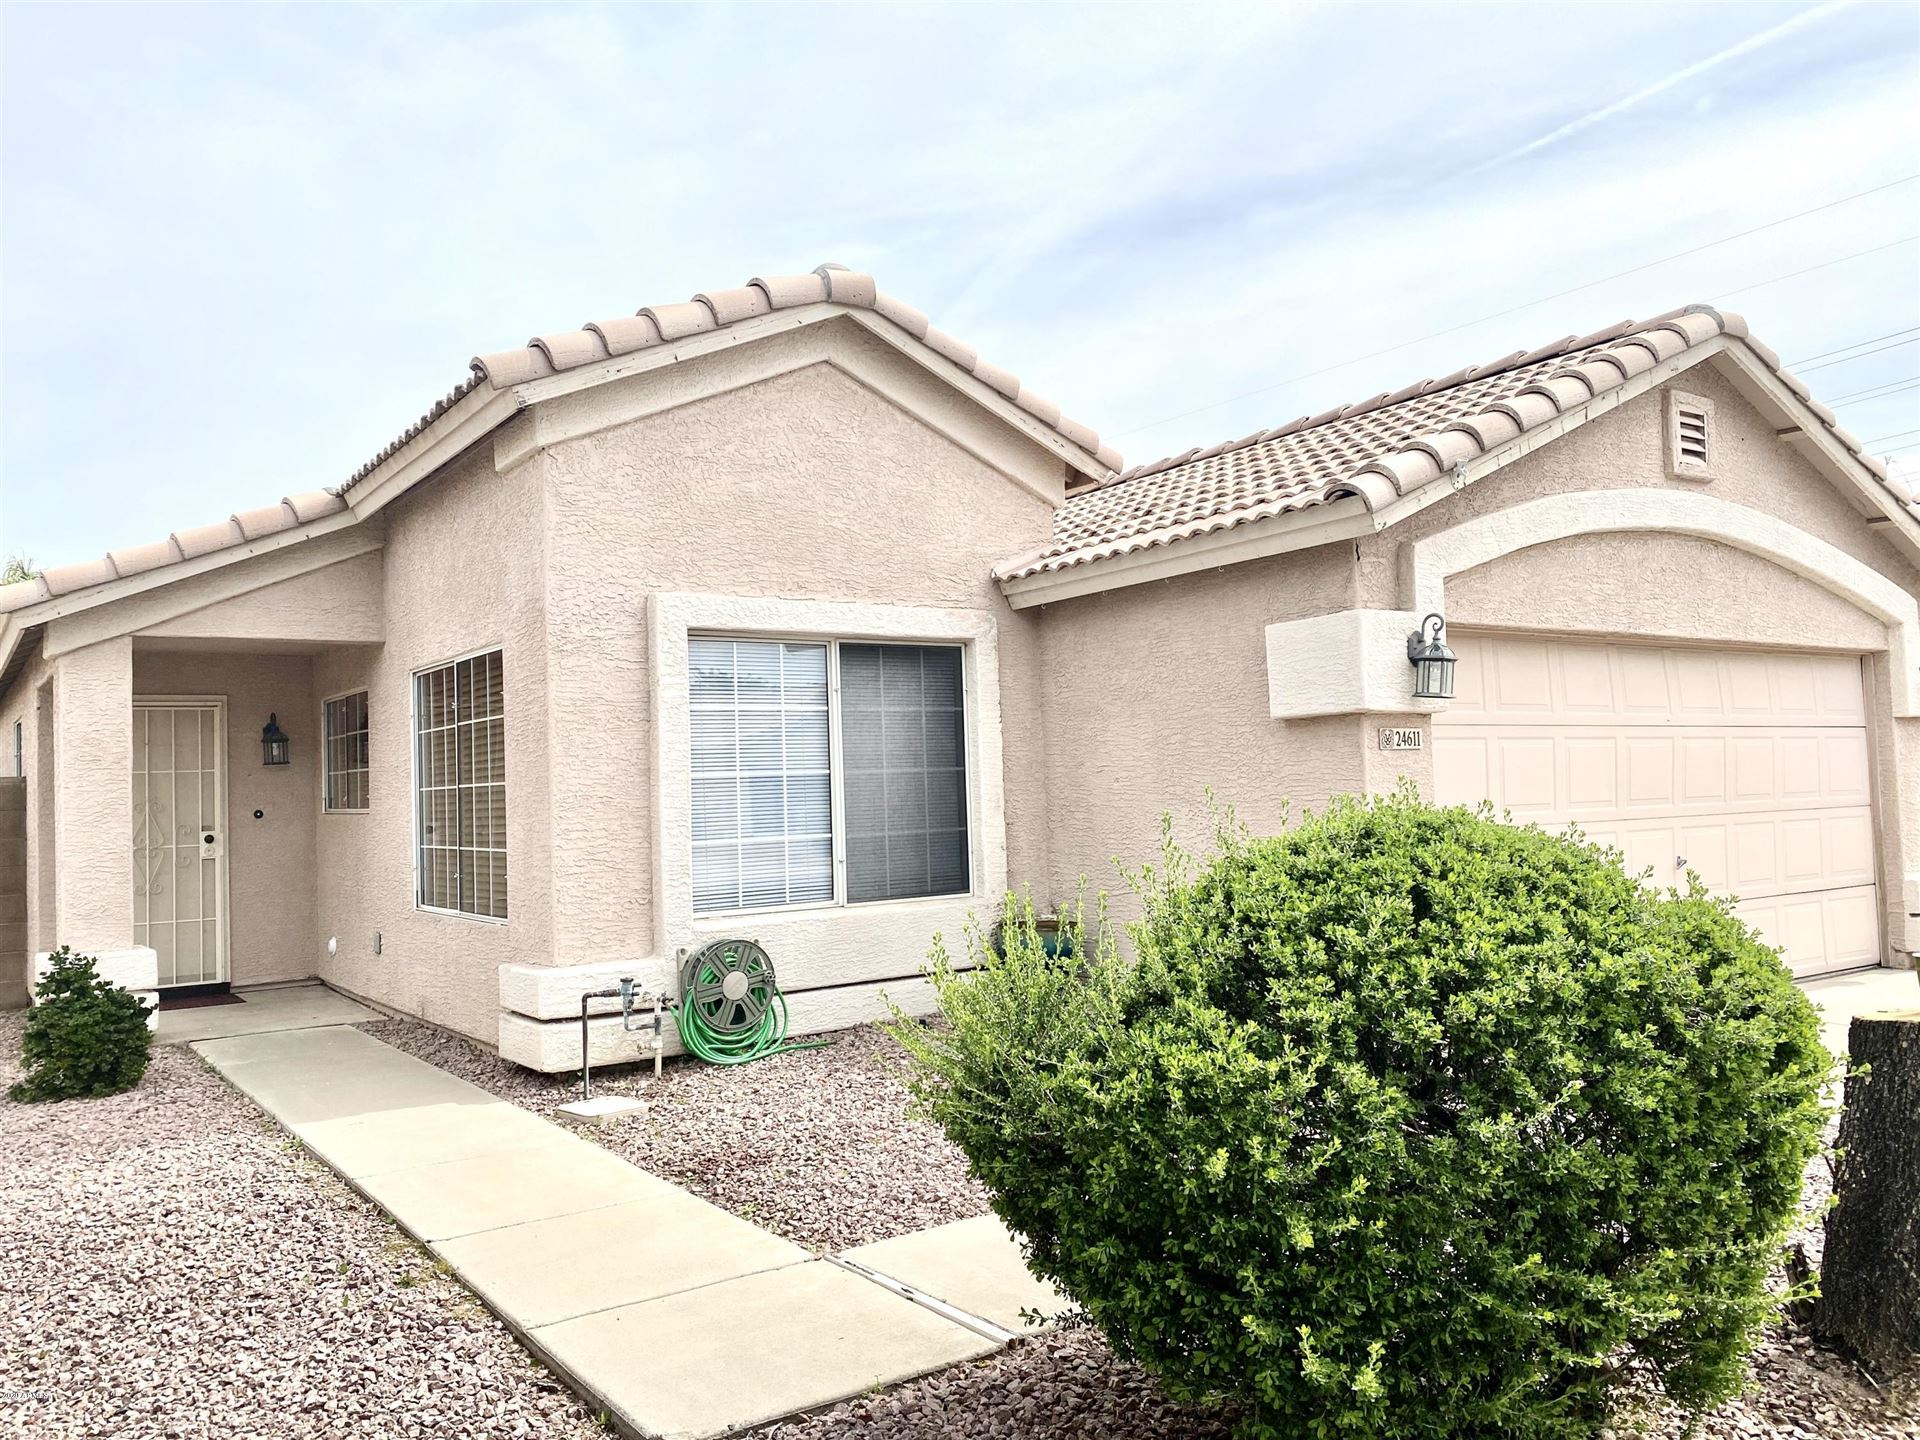 24611 N 39th Avenue, Glendale, AZ 85310 - #: 6054938